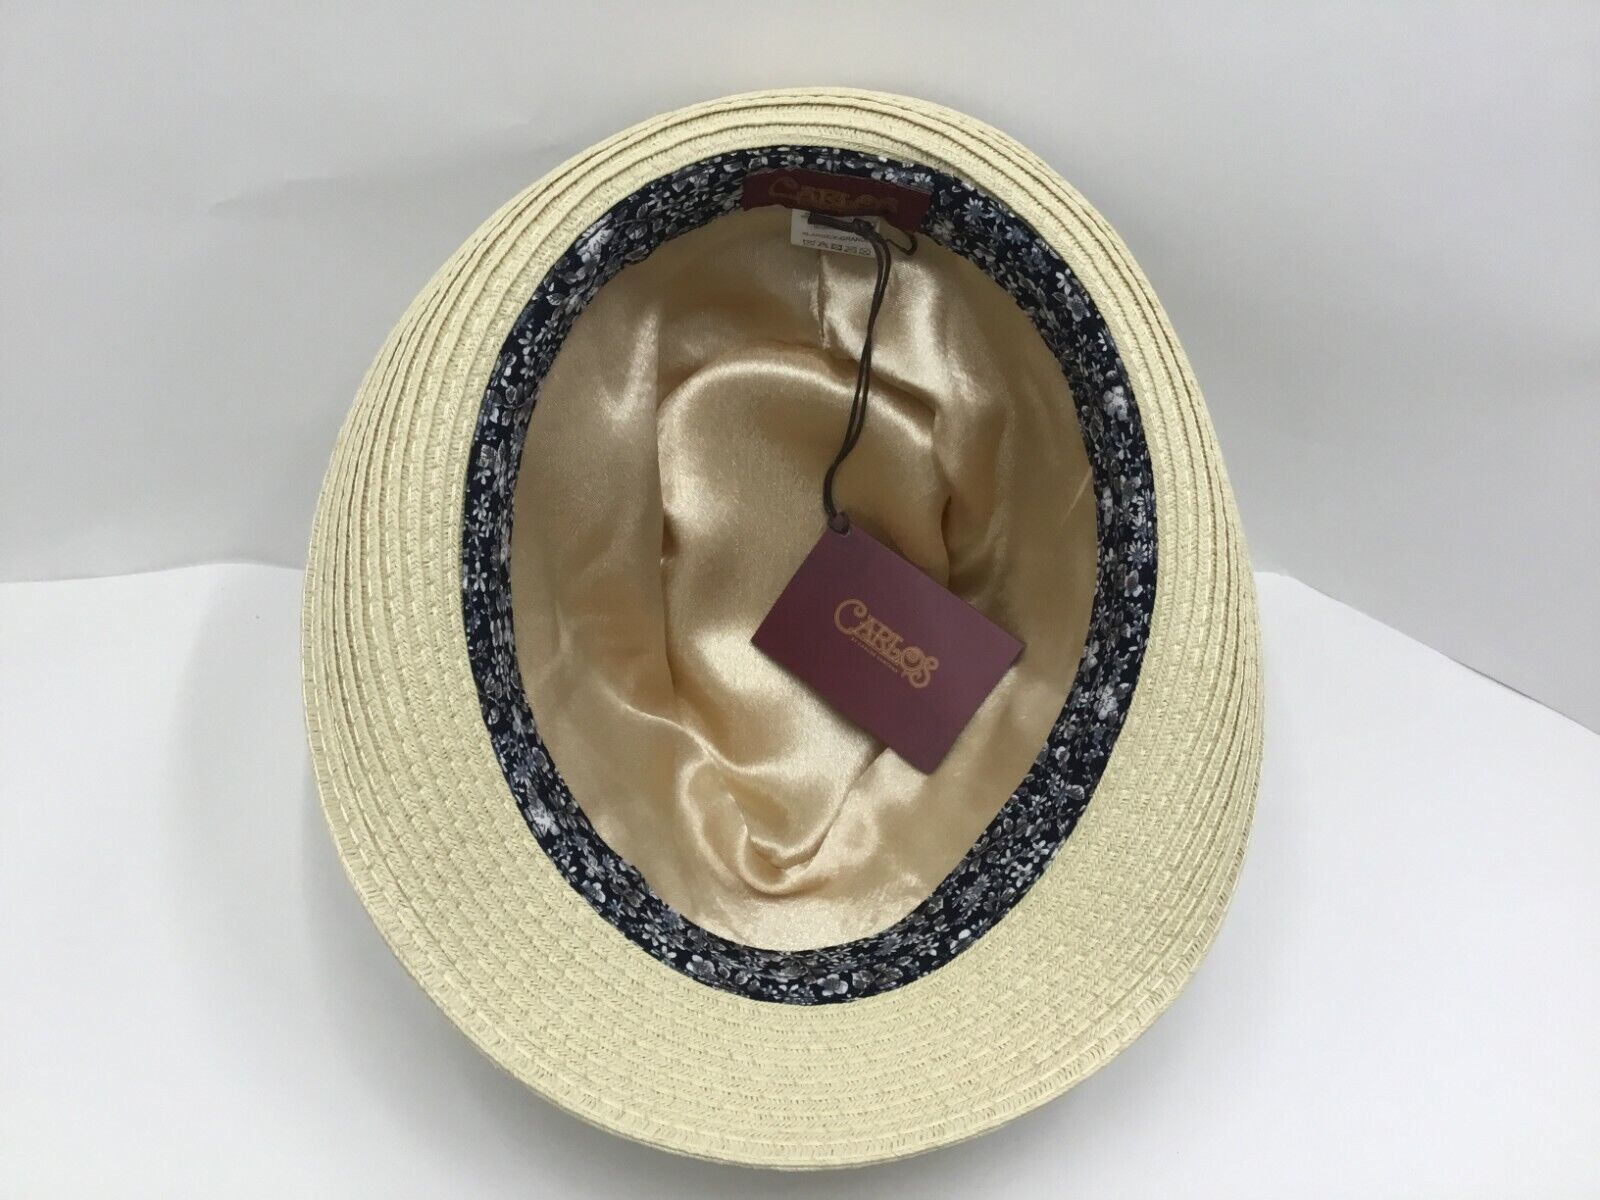 New with Tag Men's Carlos Santana DORSEY SAN 376 Straw Hat White / Beige Fedora Clothing, Shoes & Accessories